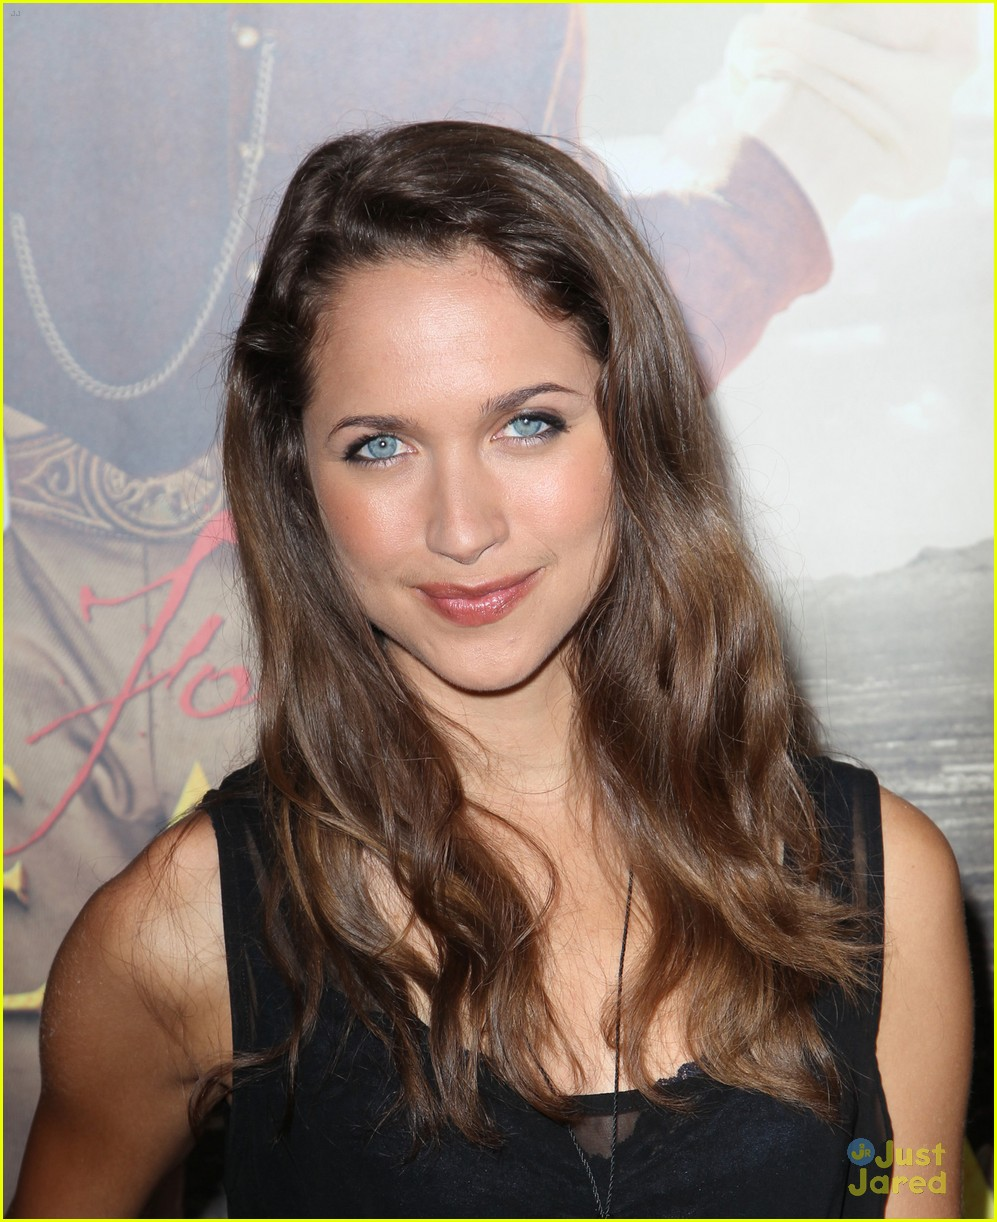 maiara walsh 2015maiara walsh instagram, maiara walsh wdw, maiara walsh wiki, maiara walsh 2016, maiara walsh, maiara walsh movies, maiara walsh vampire diaries, maiara walsh imdb, maiara walsh boyfriend, maiara walsh 2015, maiara walsh twitter, maiara walsh zombieland, maiara walsh desperate housewives, maiara walsh 2014, maiara walsh facebook, maiara walsh bio, maiara walsh wikipedia, maiara walsh net worth